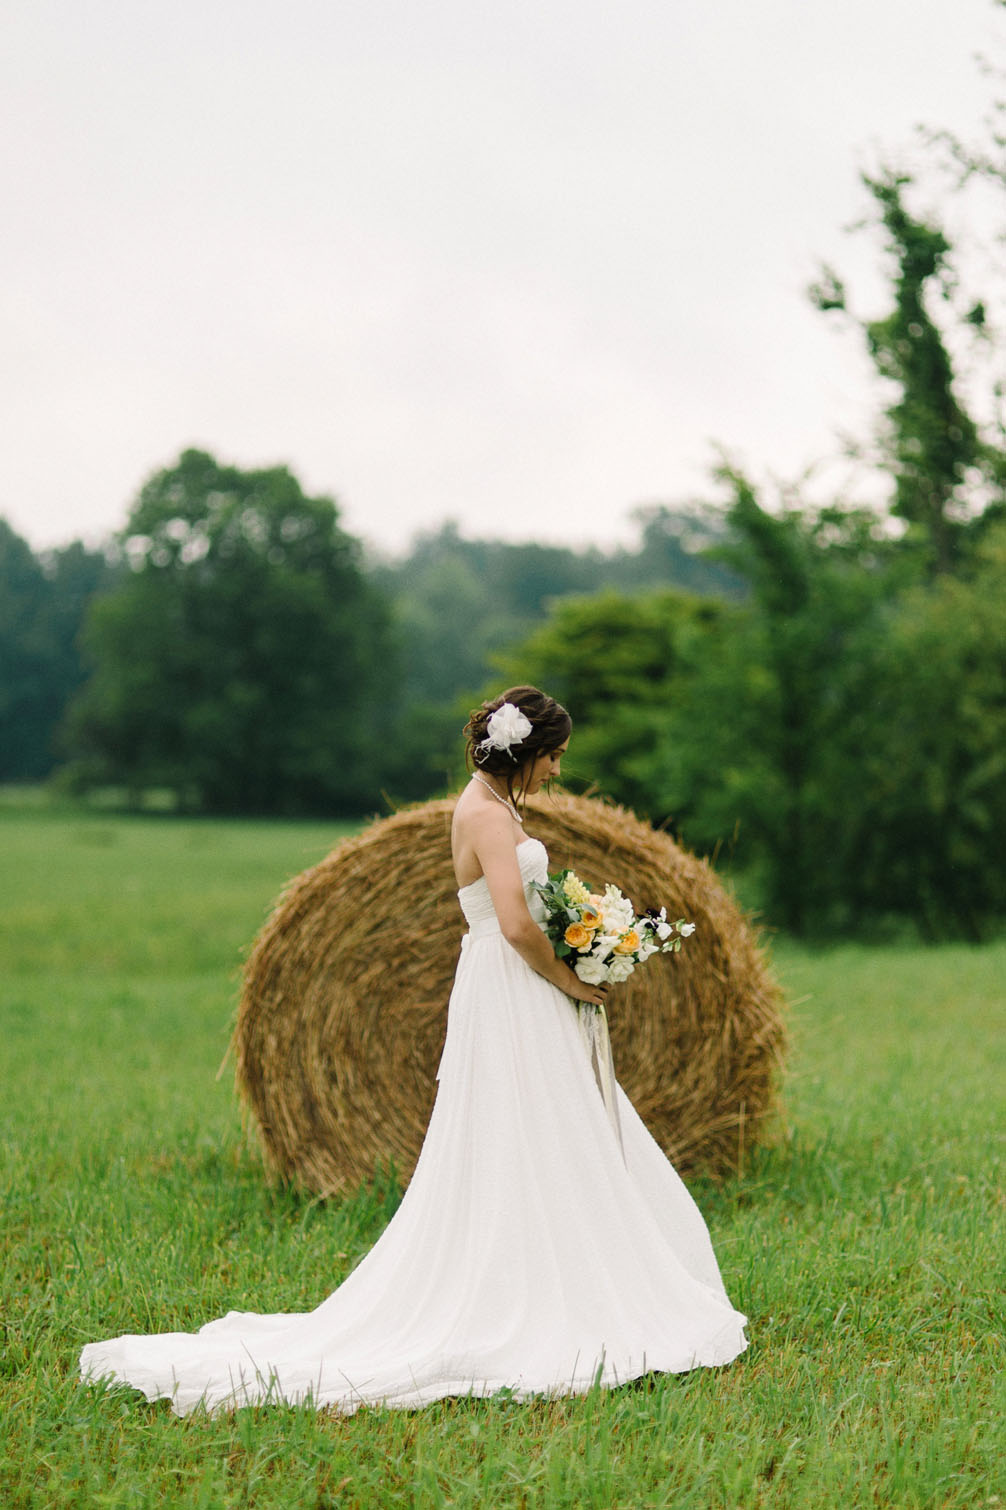 Cassy and Cameron's Wooded Wedding in Northern Michigan